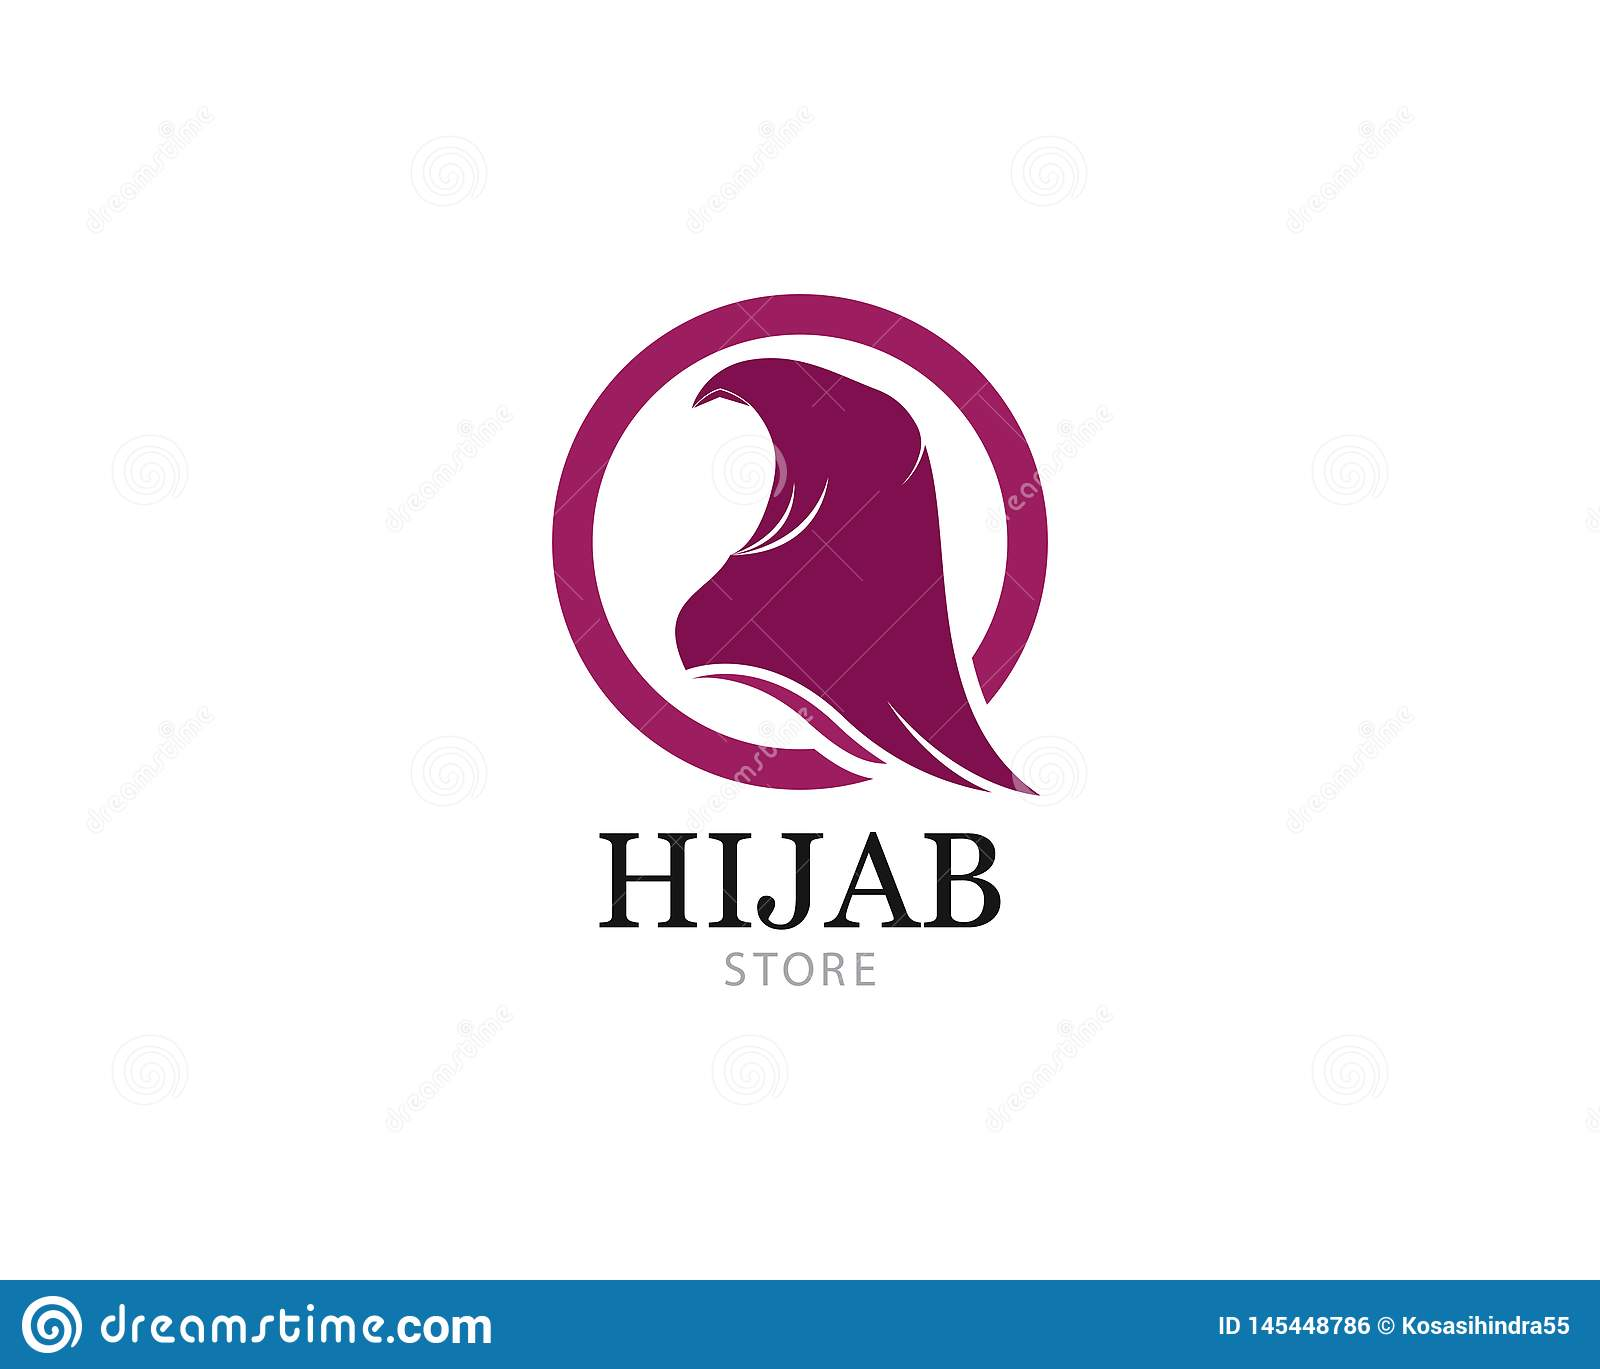 Muslimah Hijab Logo Template Vector Illustration Stock Vector